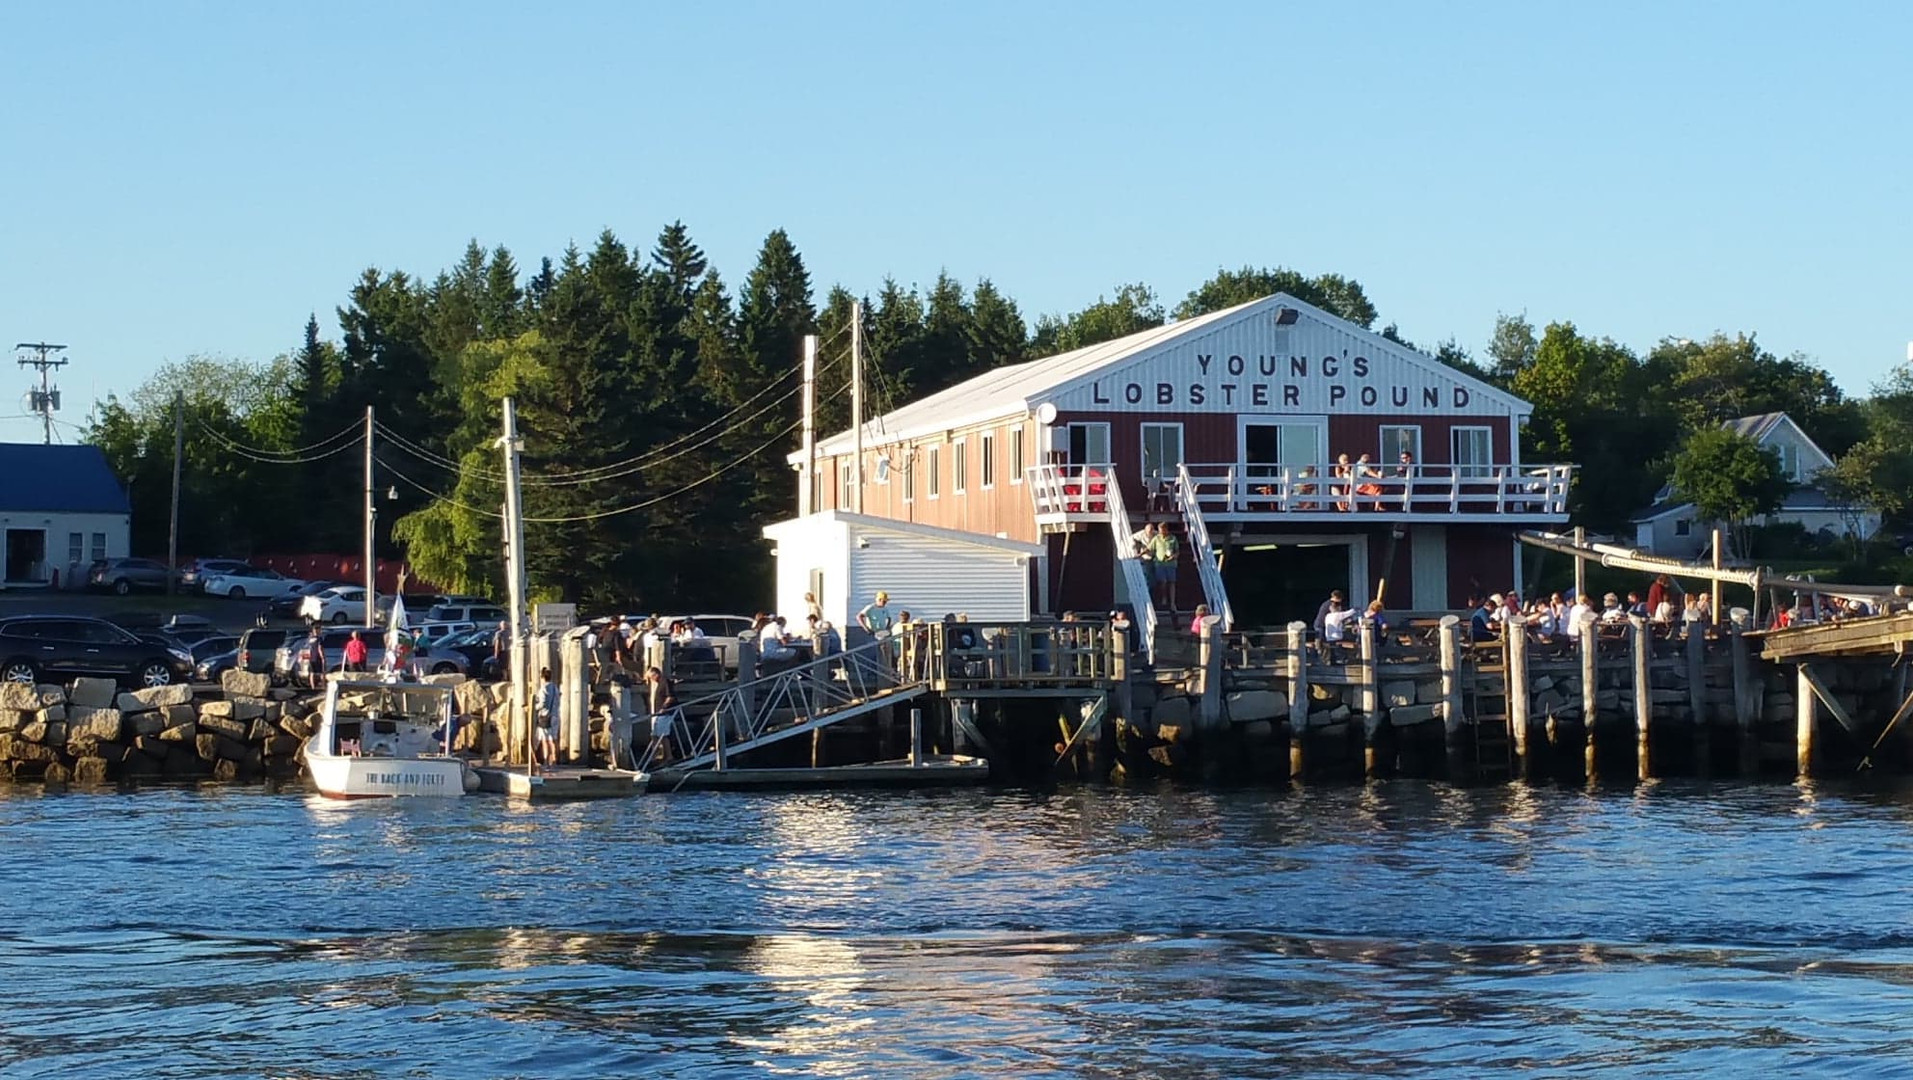 The back and forth at Youngs Lobster Pound